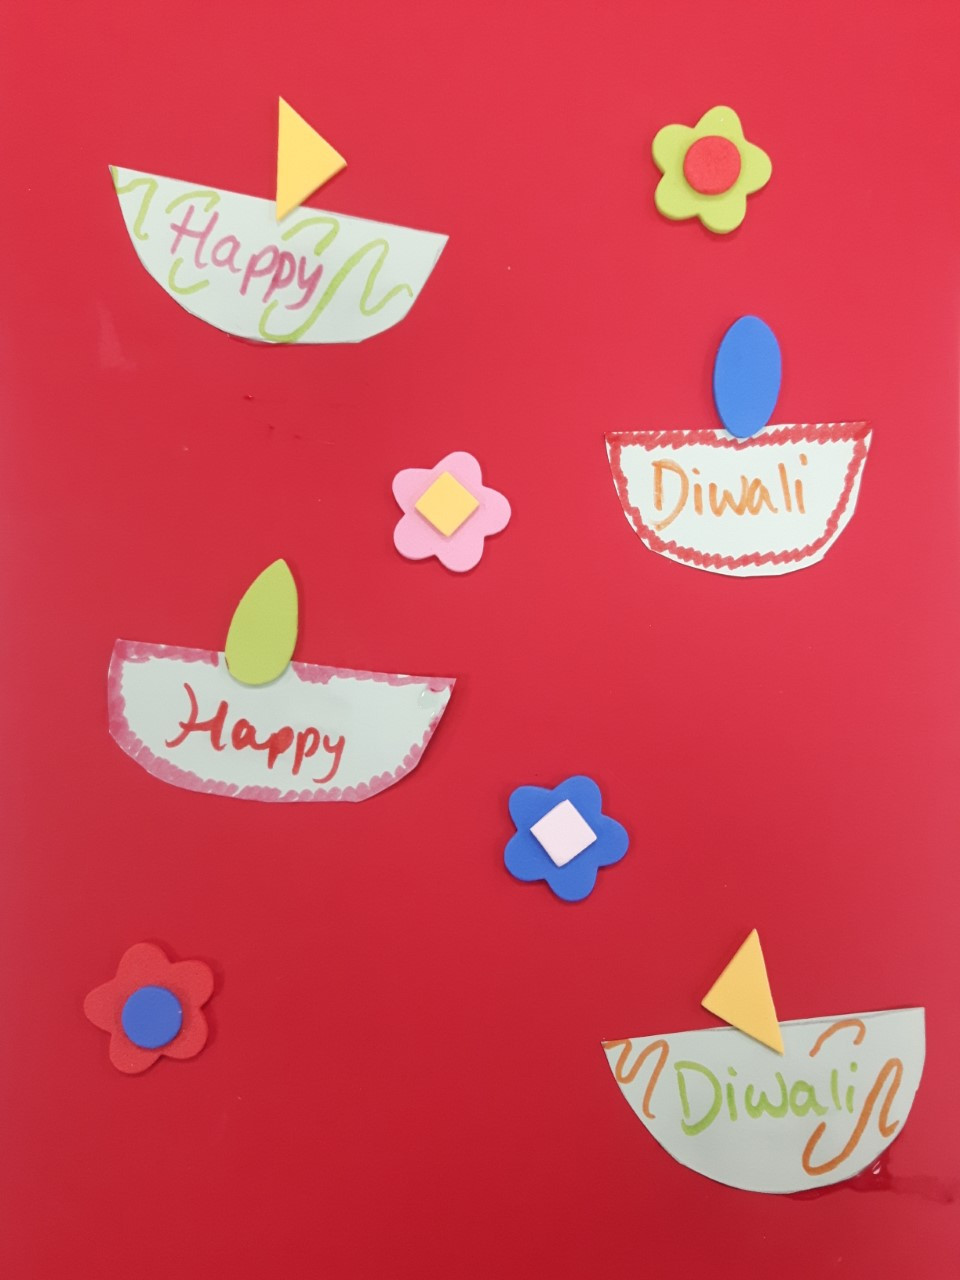 Create Diwali inspired flames from foam cut-outs